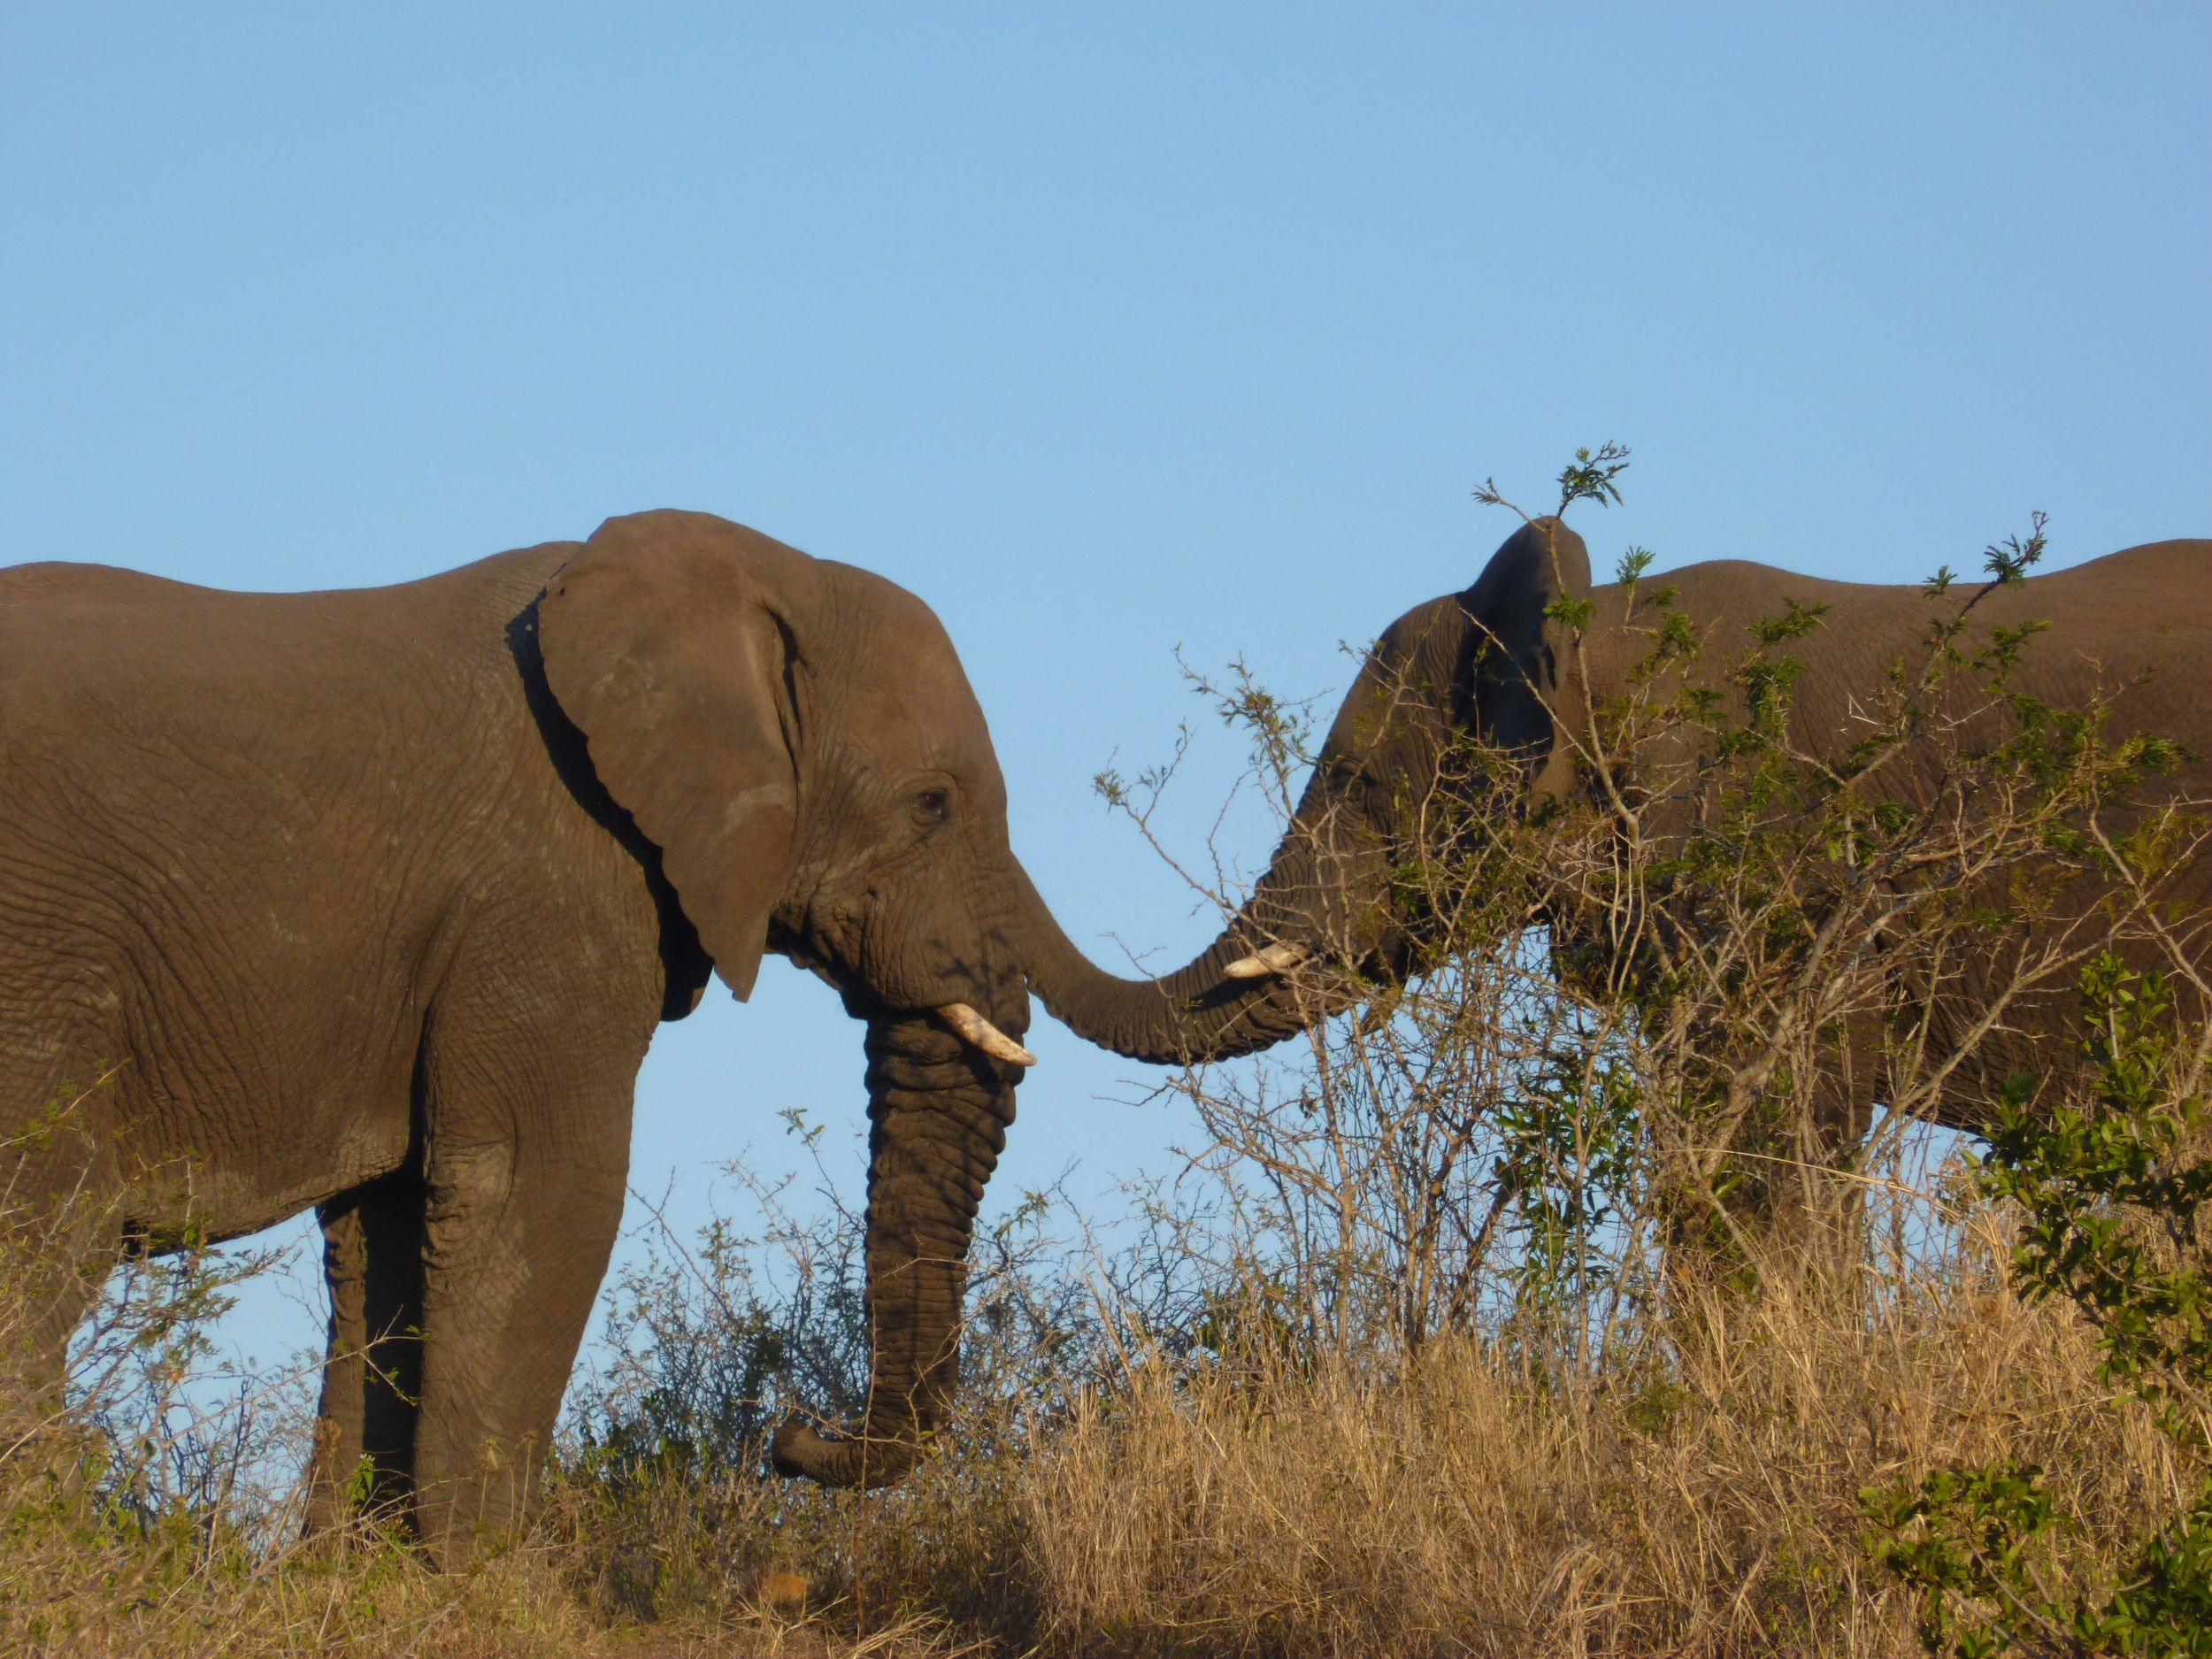 Two of the rescued elephants, just before sunset, enjoying a friendly moment as we looked on…